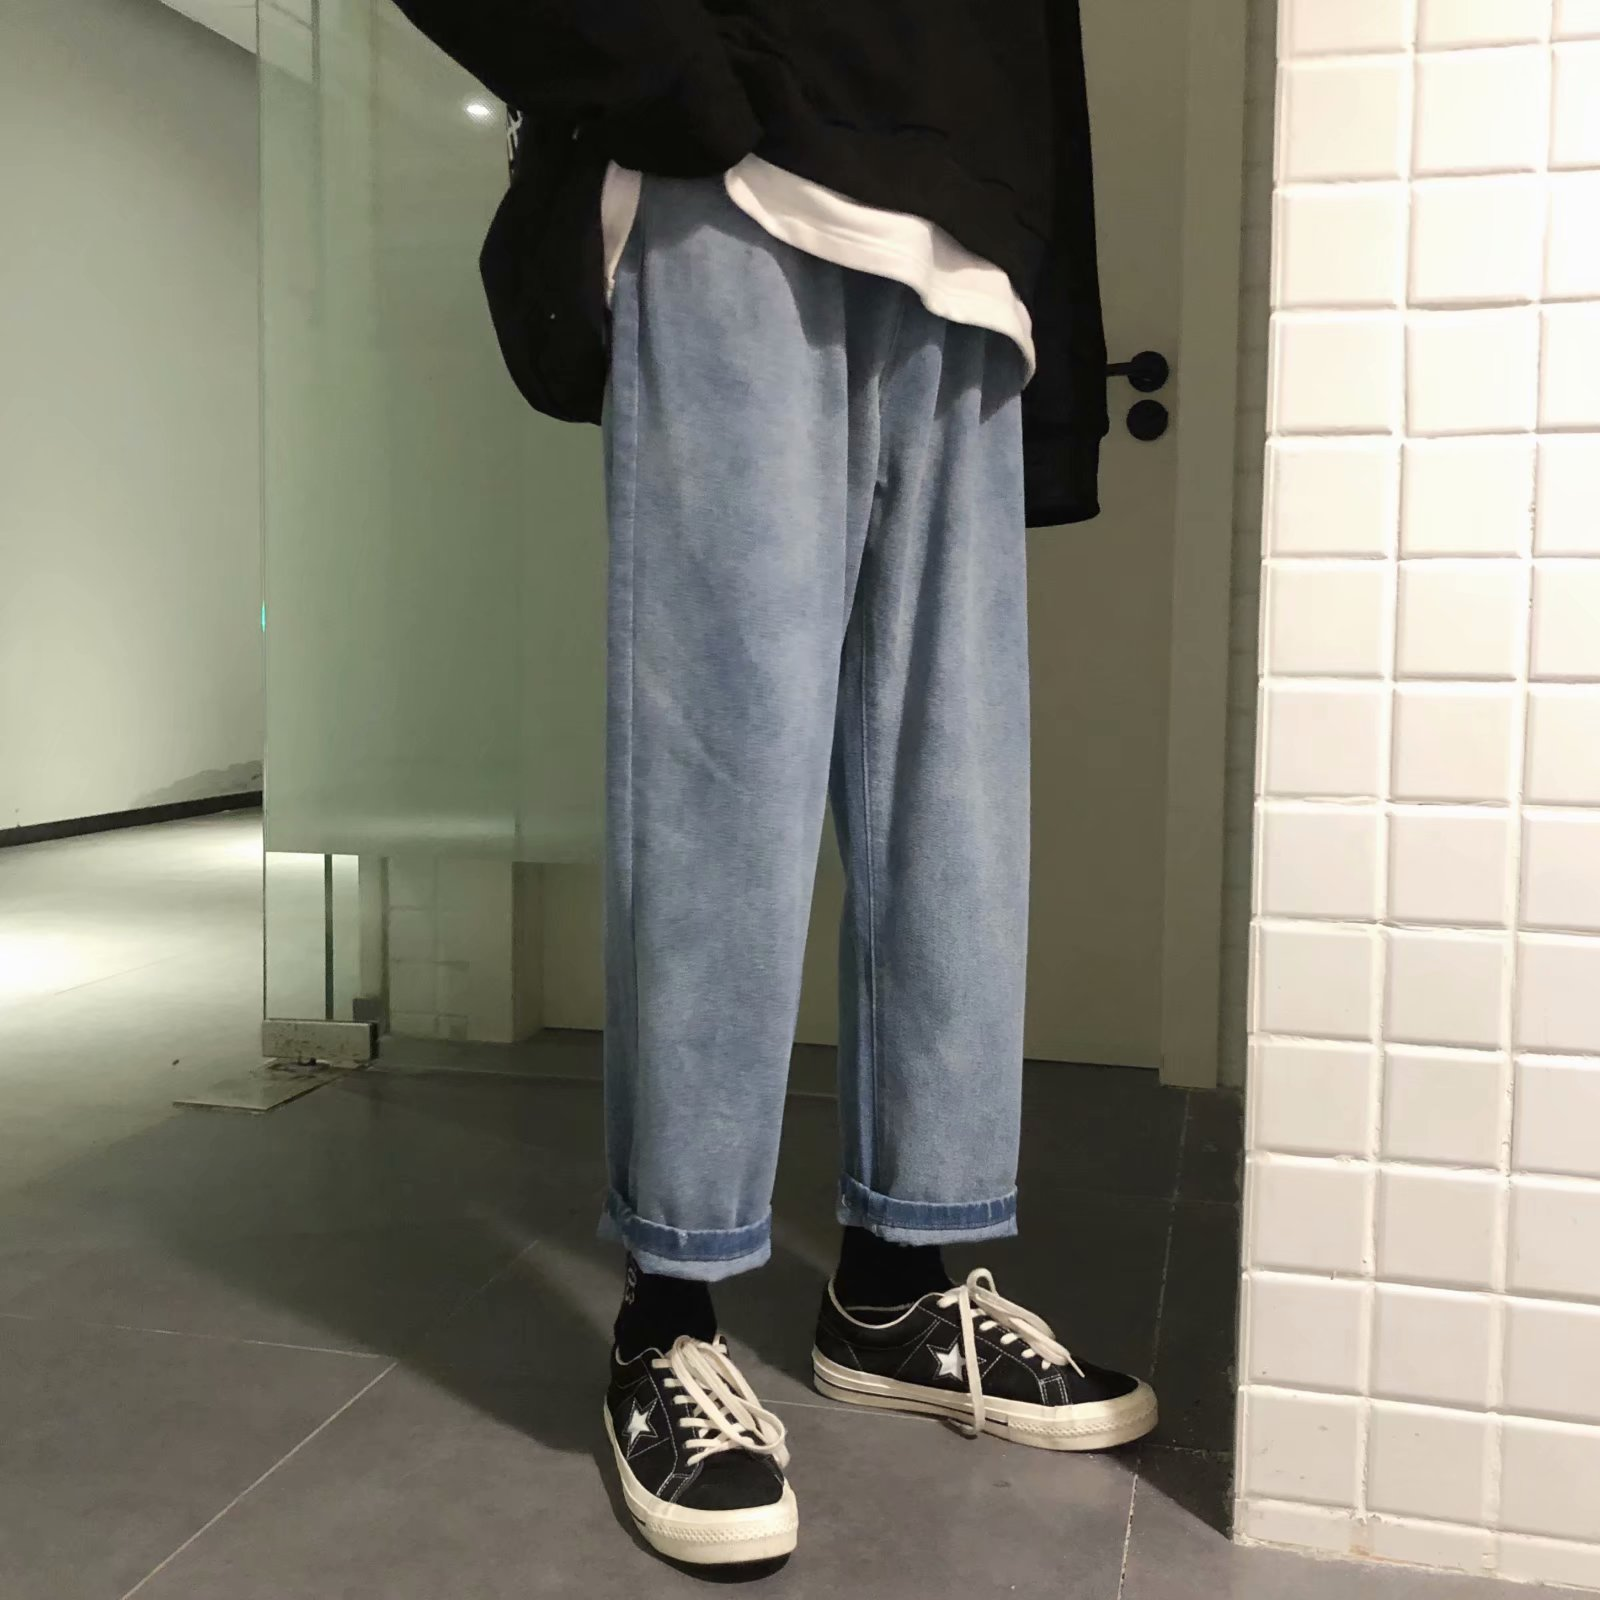 ins ultra-fire nine-point jeans men's harbor wind loose fall sense broad leg pants straight hip-hop student daddy pants